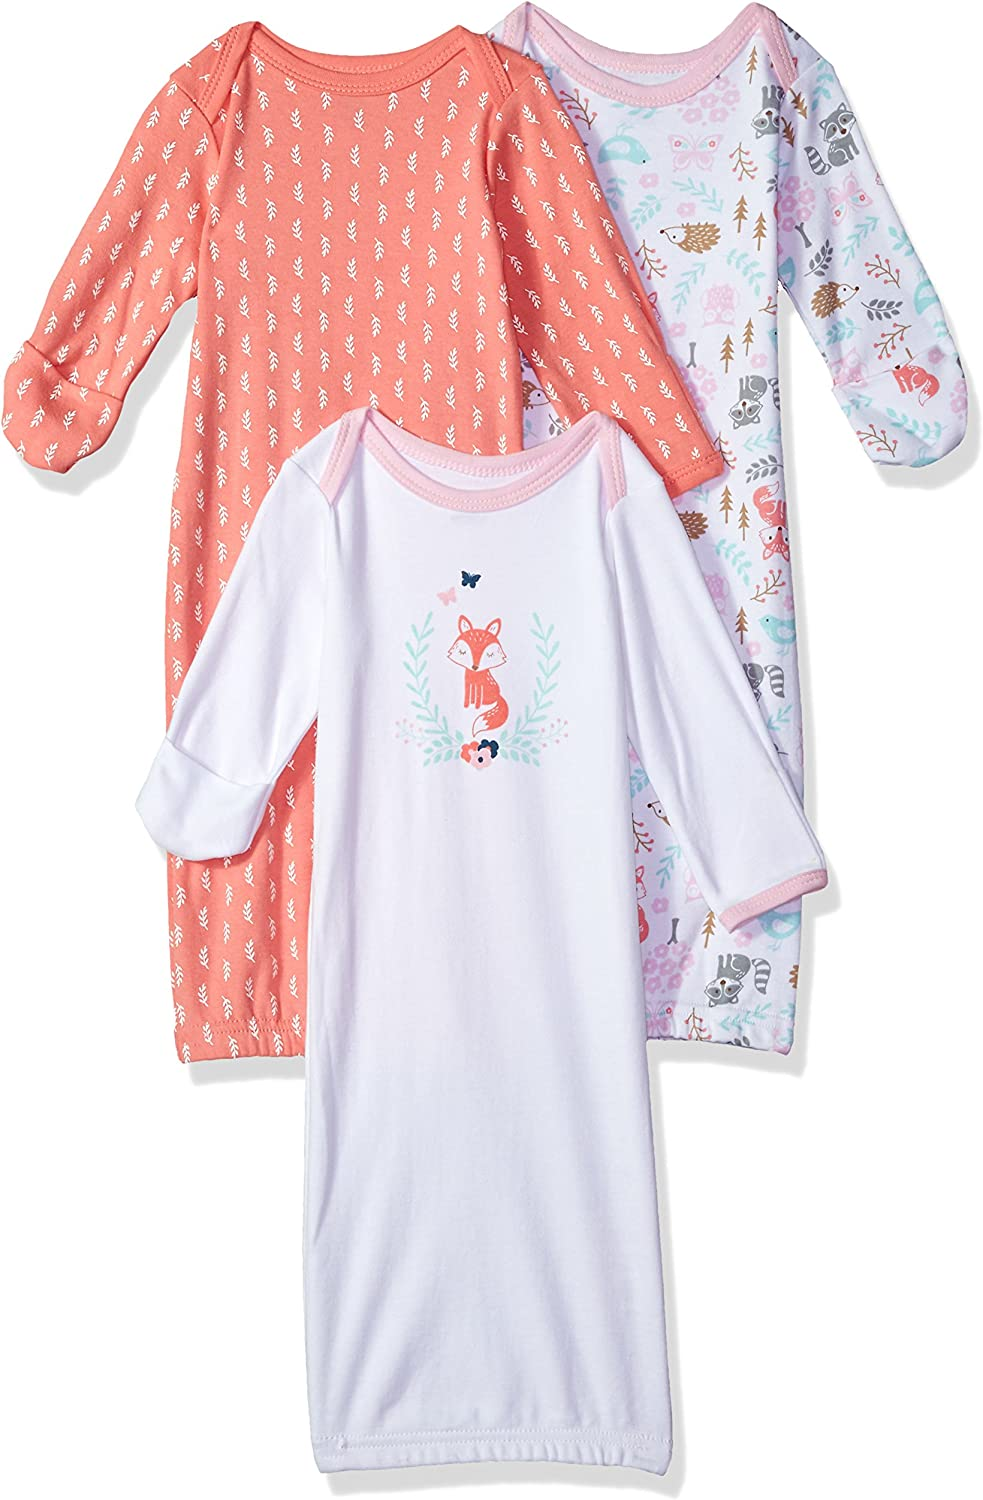 Hudson Baby Unisex Cotton Gowns Cotton Gowns